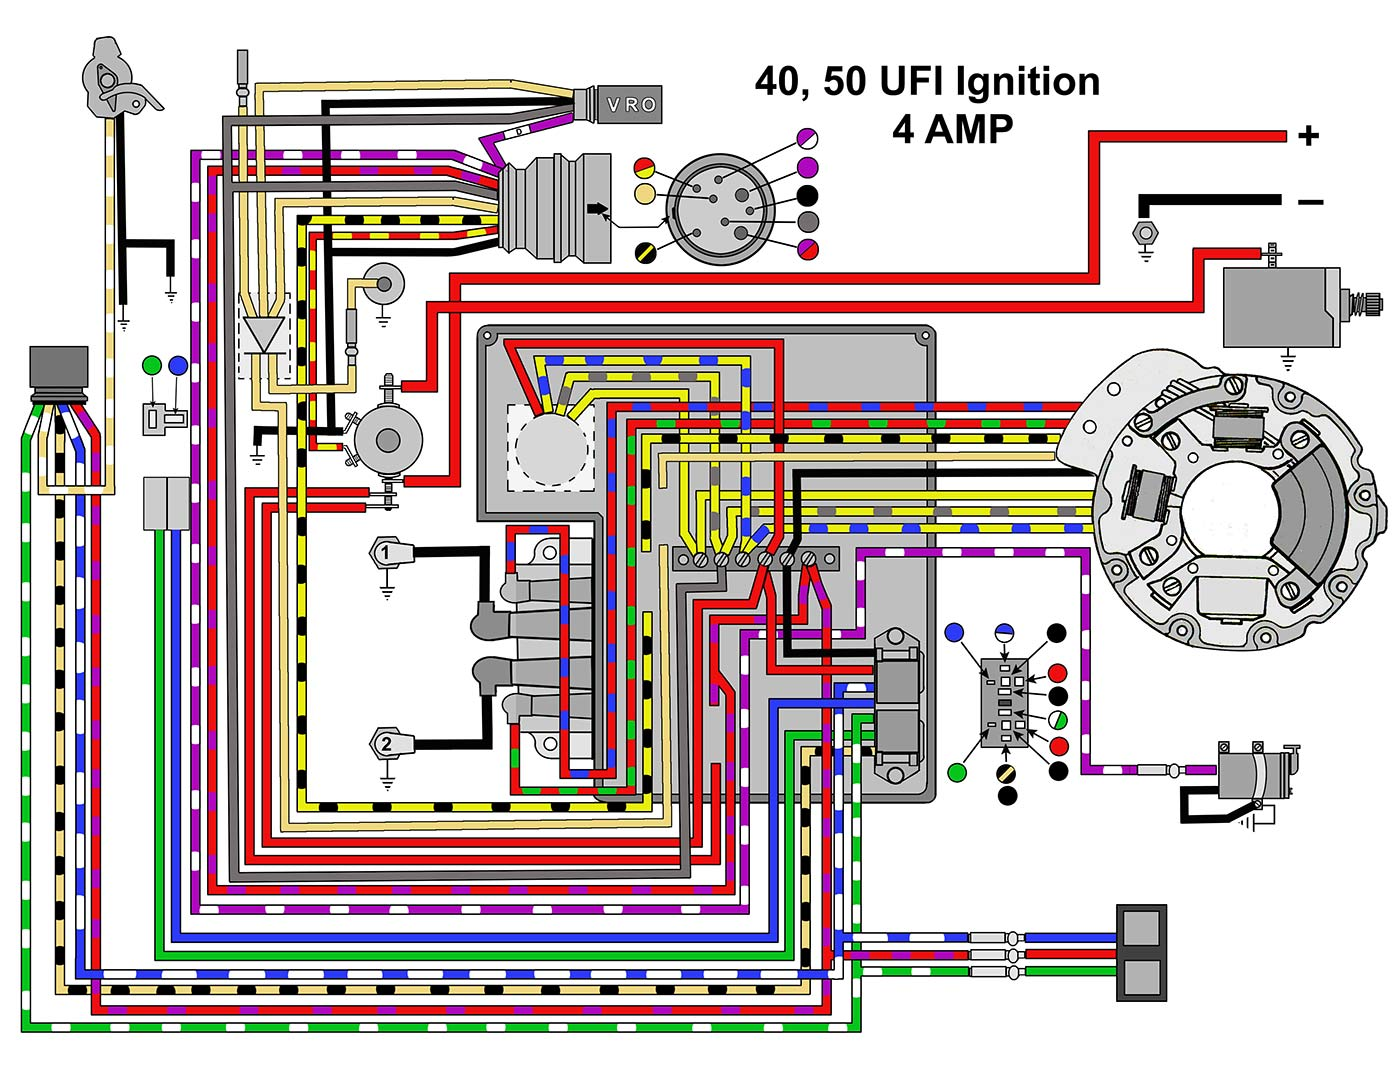 40_50_UFI max rules wiring diagrams 1972 evinrude outboard motor diagrams johnson outboard motor diagram at mifinder.co